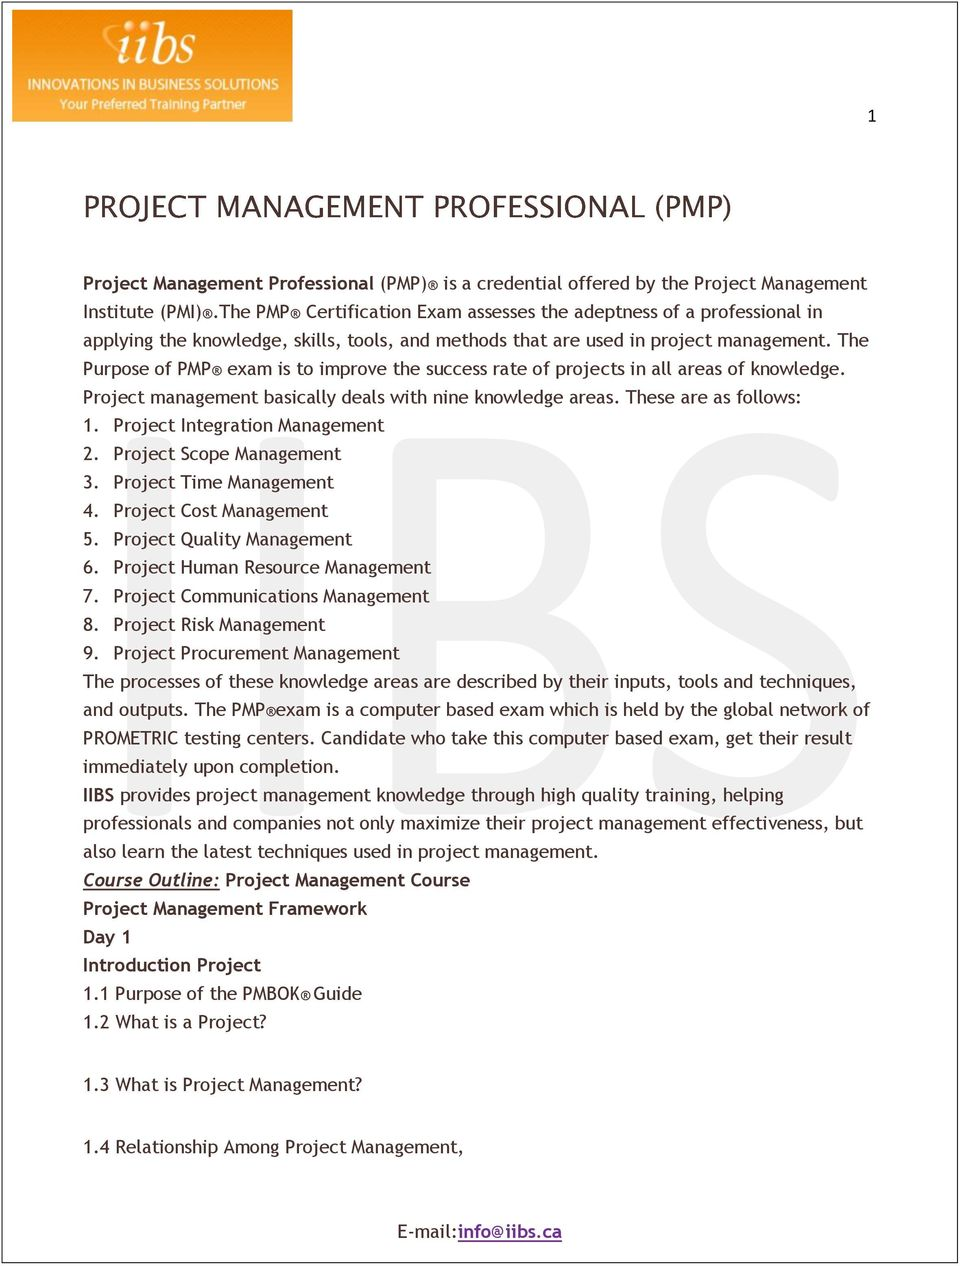 The Purpose of PMP exam is to improve the success rate of projects in all areas of knowledge. Project management basically deals with nine knowledge areas. These are as follows: 1.